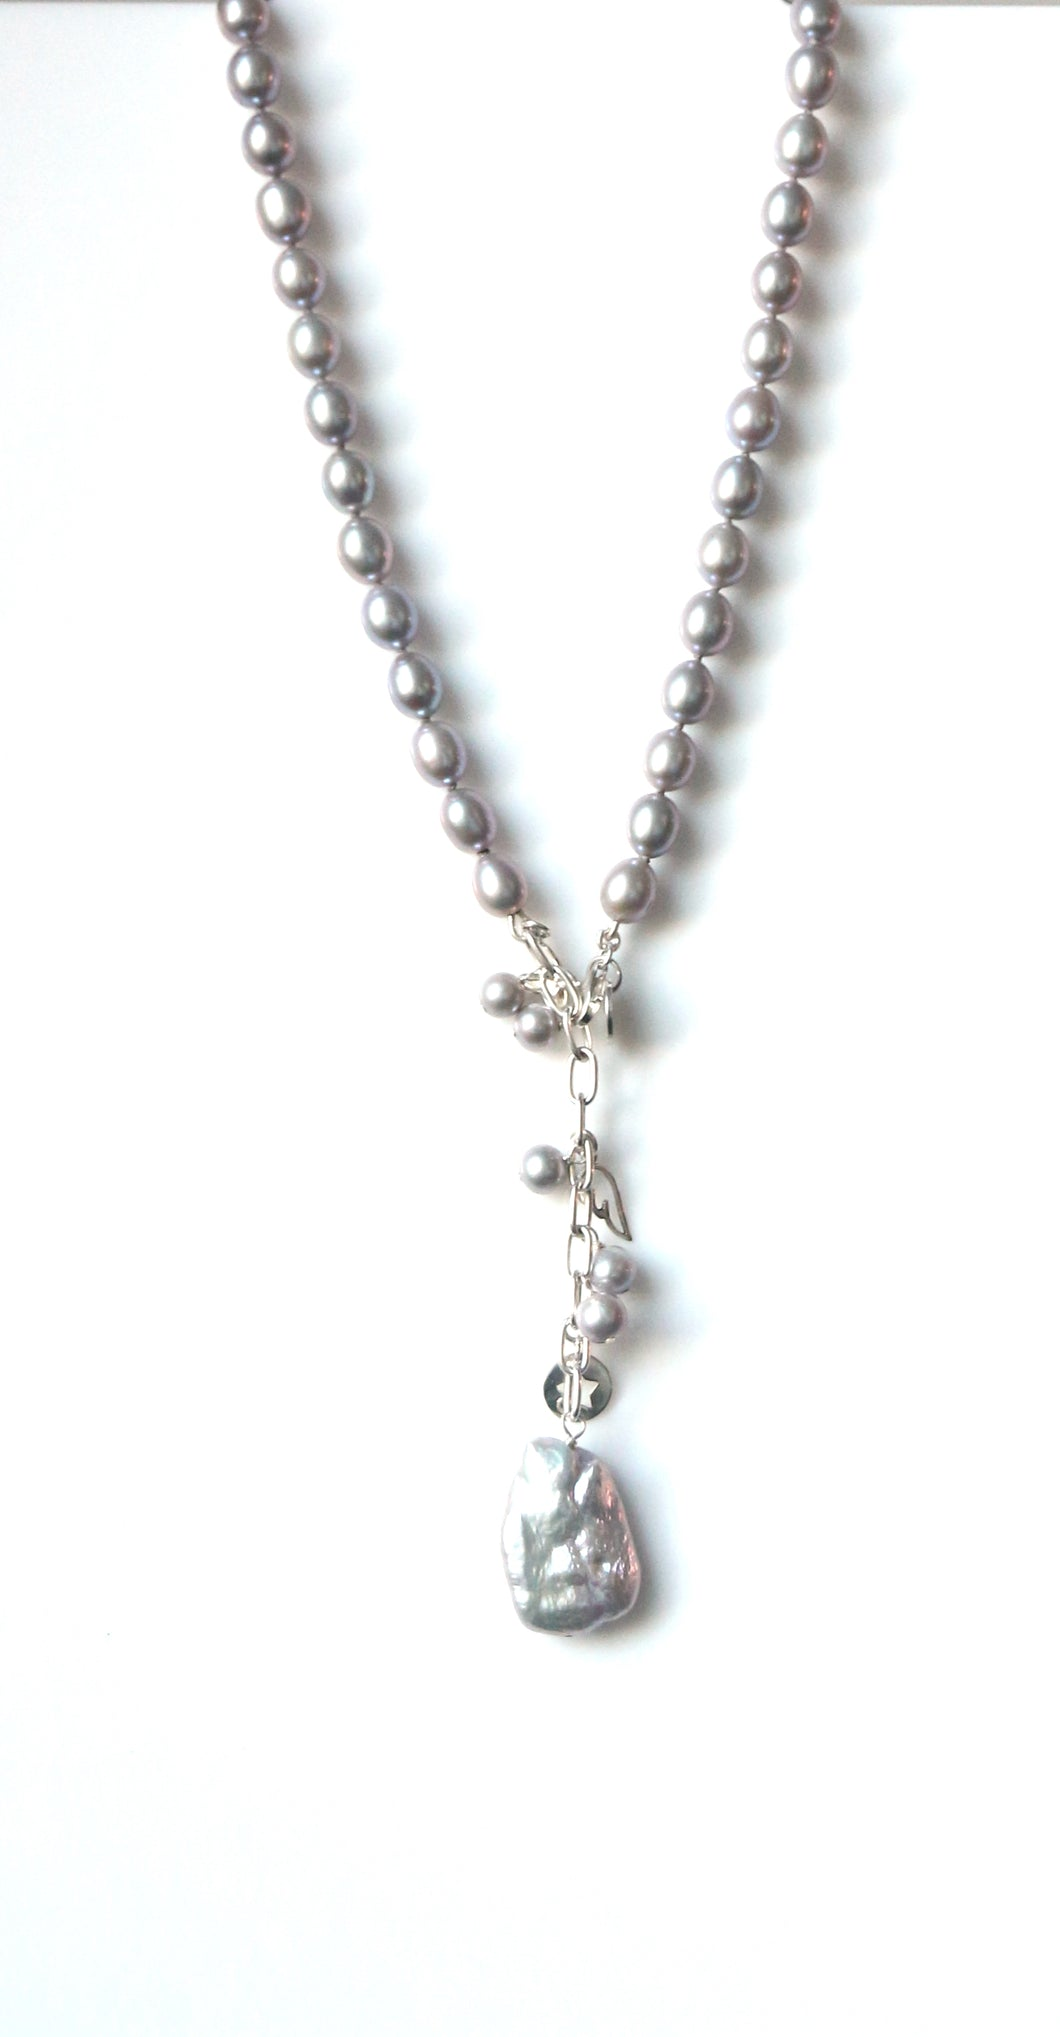 Australian Handmade Grey Necklace with Grey Pearls Baroque Pearl Silver Chain and Charms